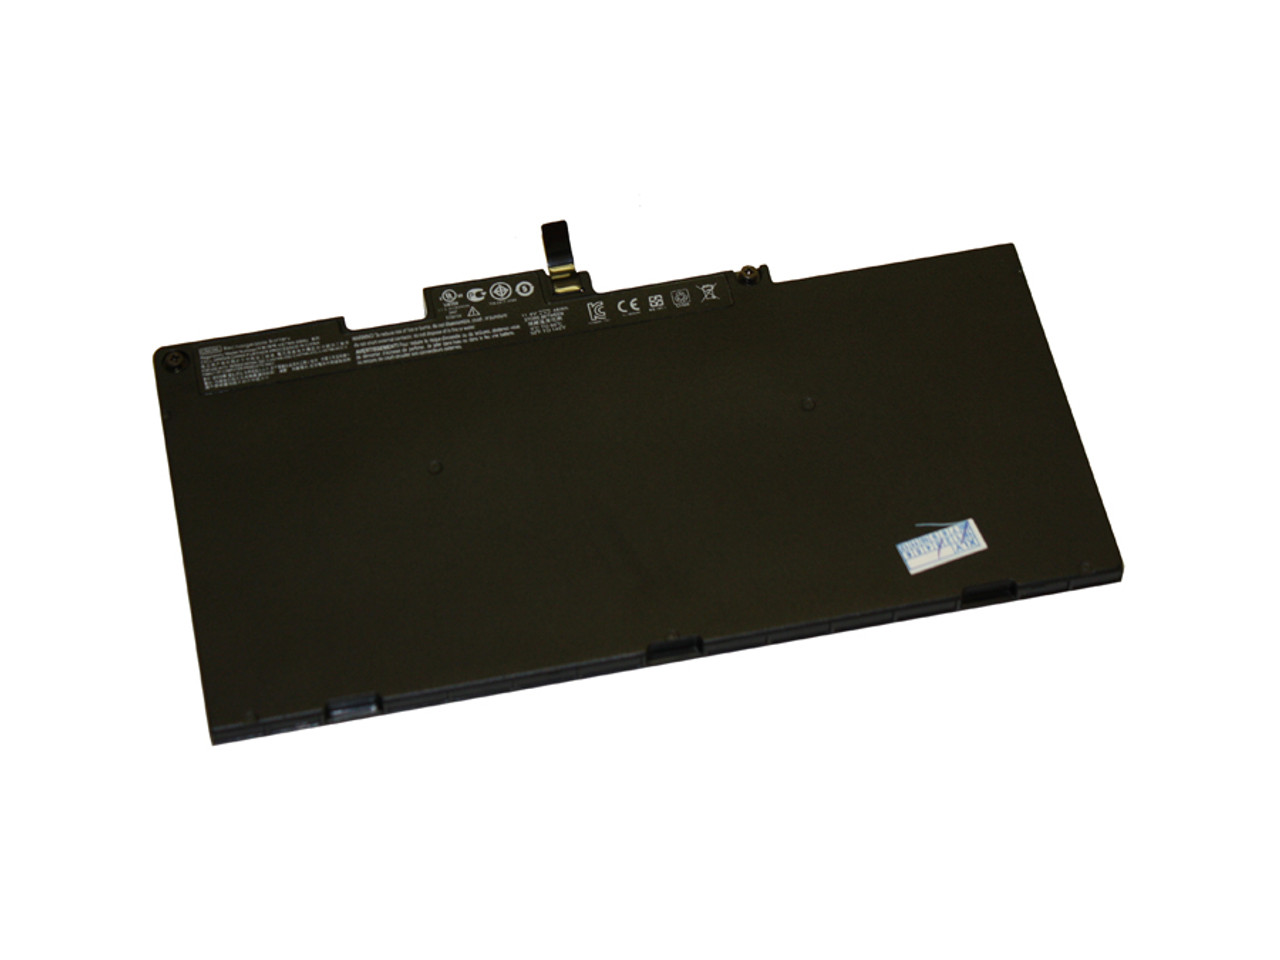 Replacement  Battery for HP - COMPAQ HP Zbook 14U G4, 15U G4; Elitebook 745 G4, 755 G4, 840 G4, 850 G4